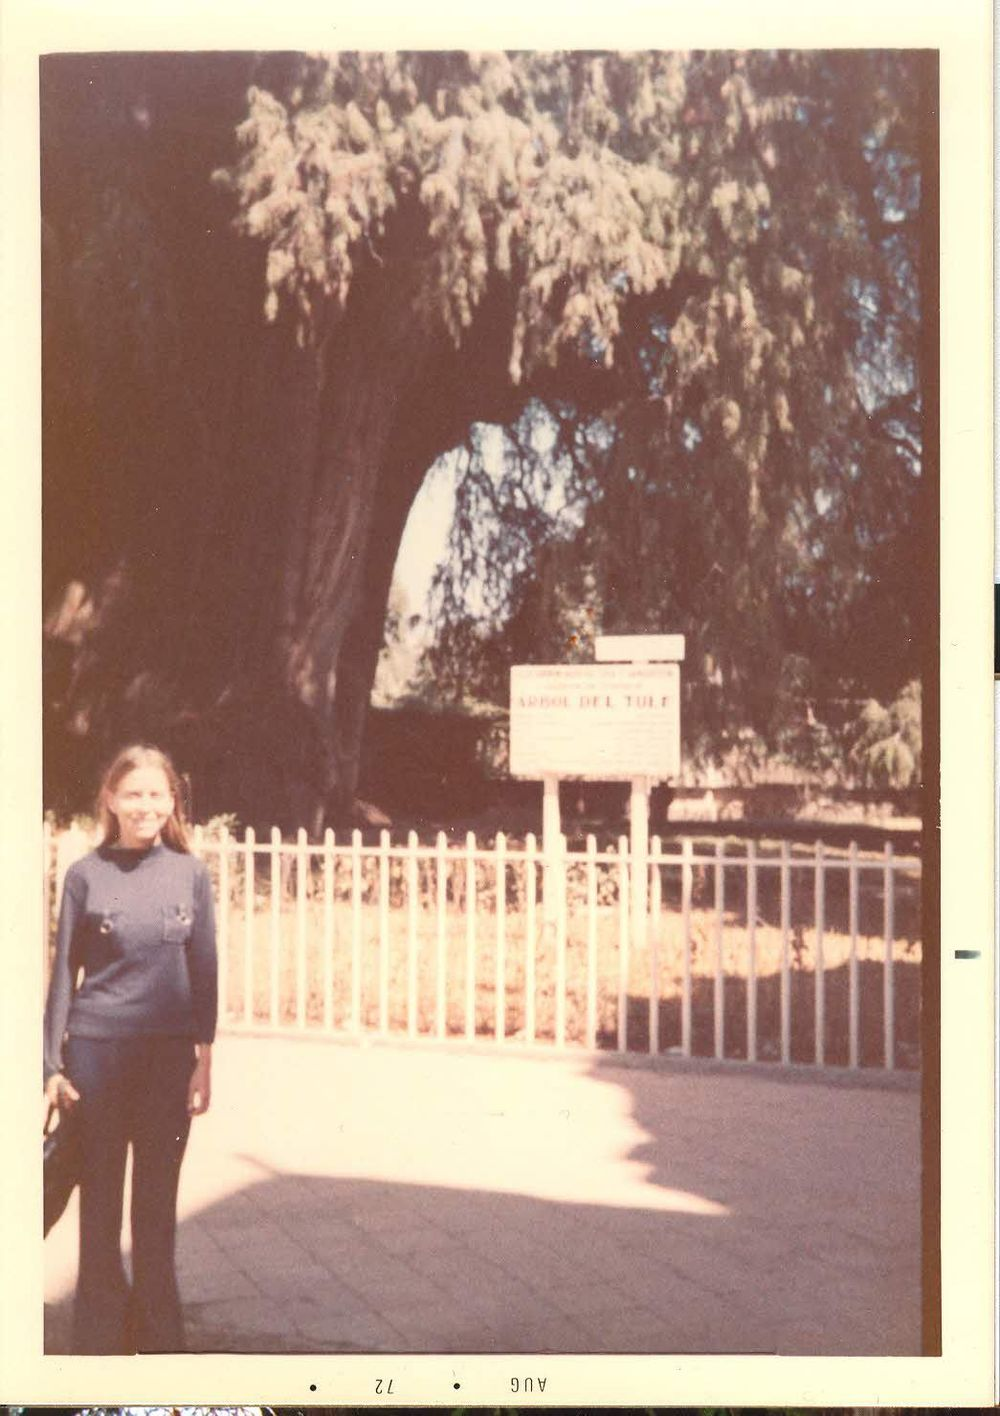 1972 - the Tule tree in Santa Maria del Tule, Oaxaca